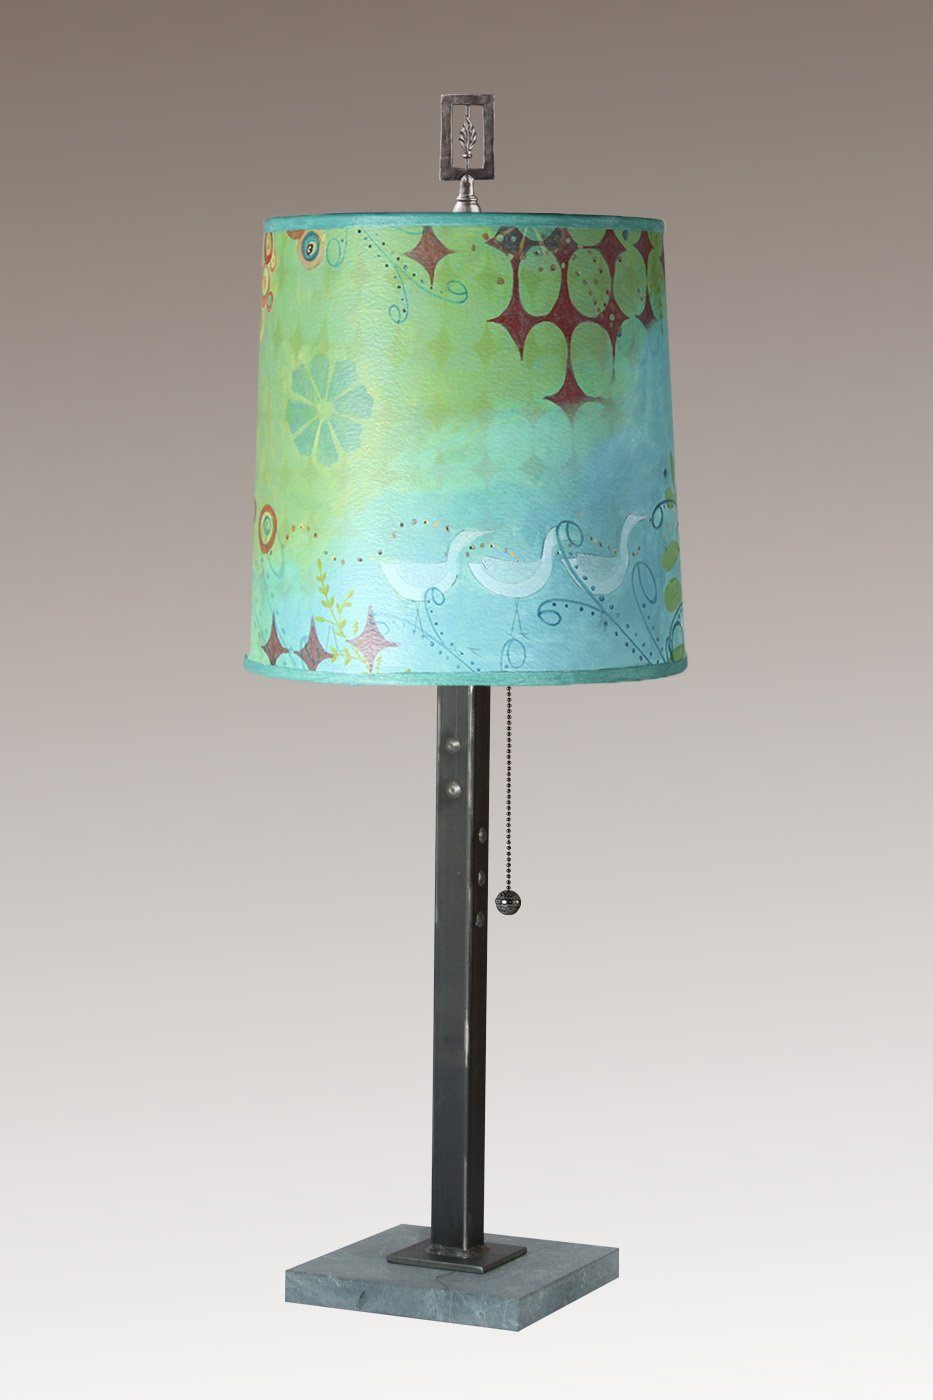 Steel Table Lamp on Marble with Medium Drum Shade in Dream Bird